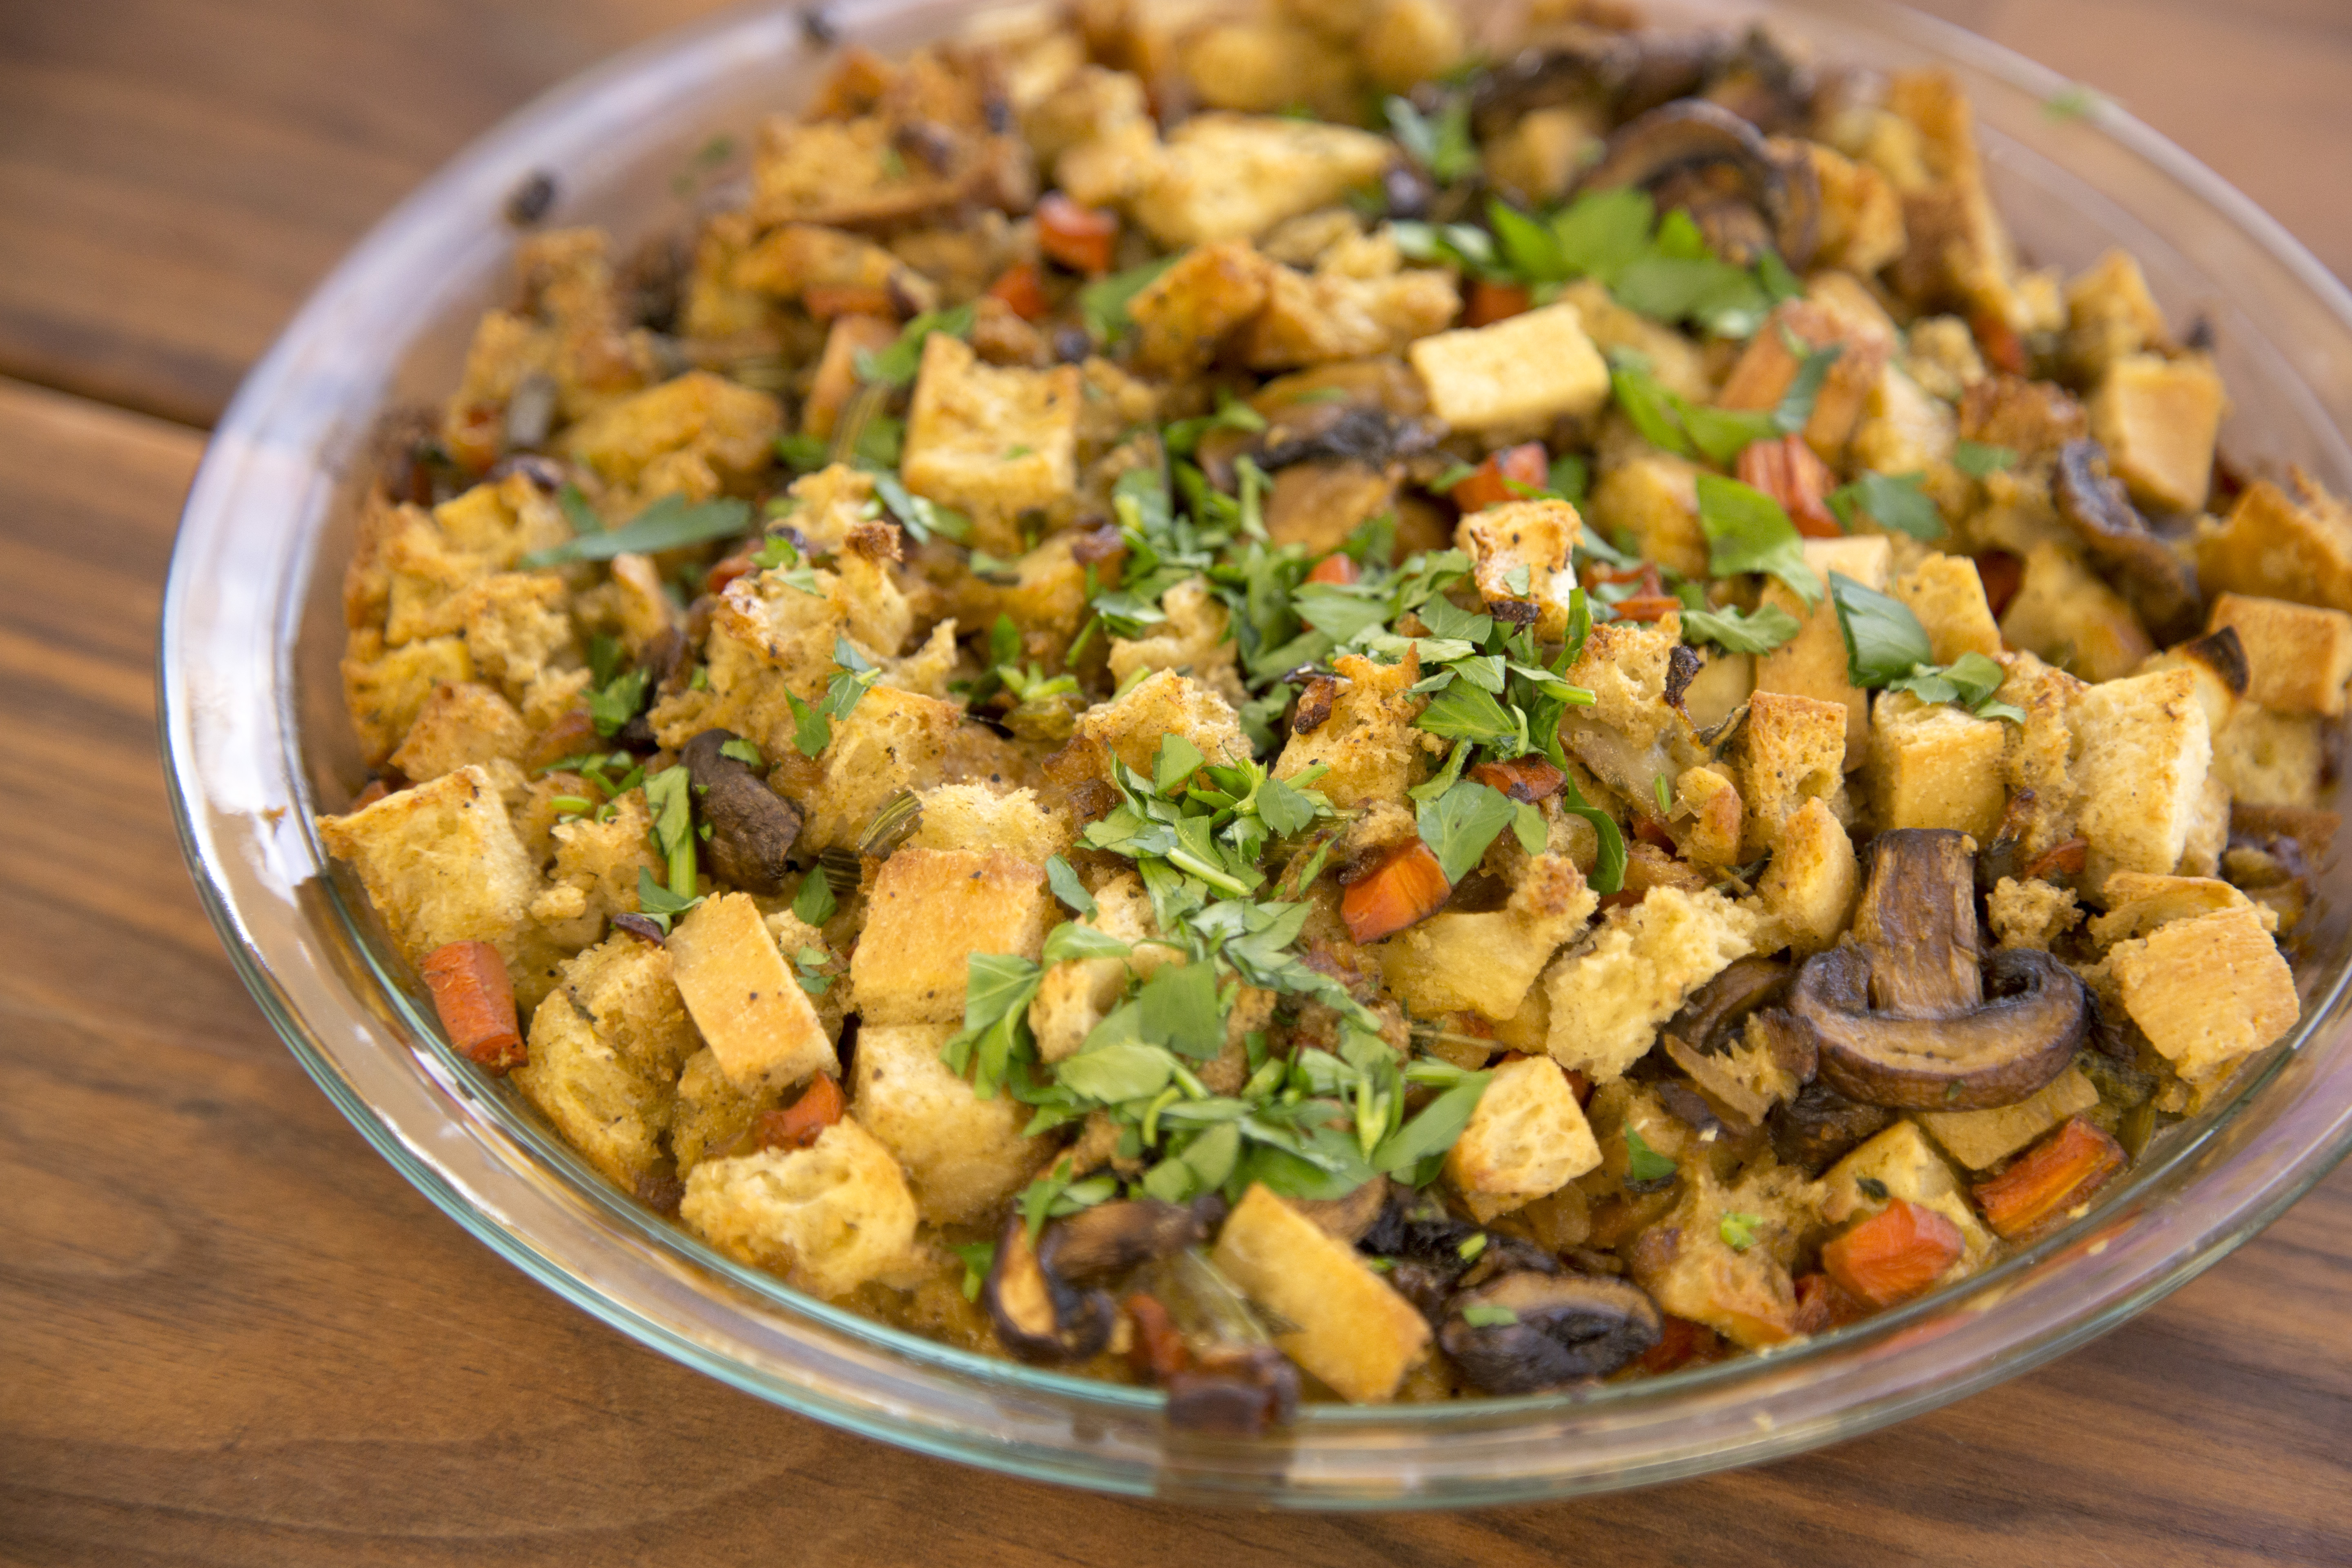 Healthy Stuffing Recipe You'll Love! (Cooking Demo Video)